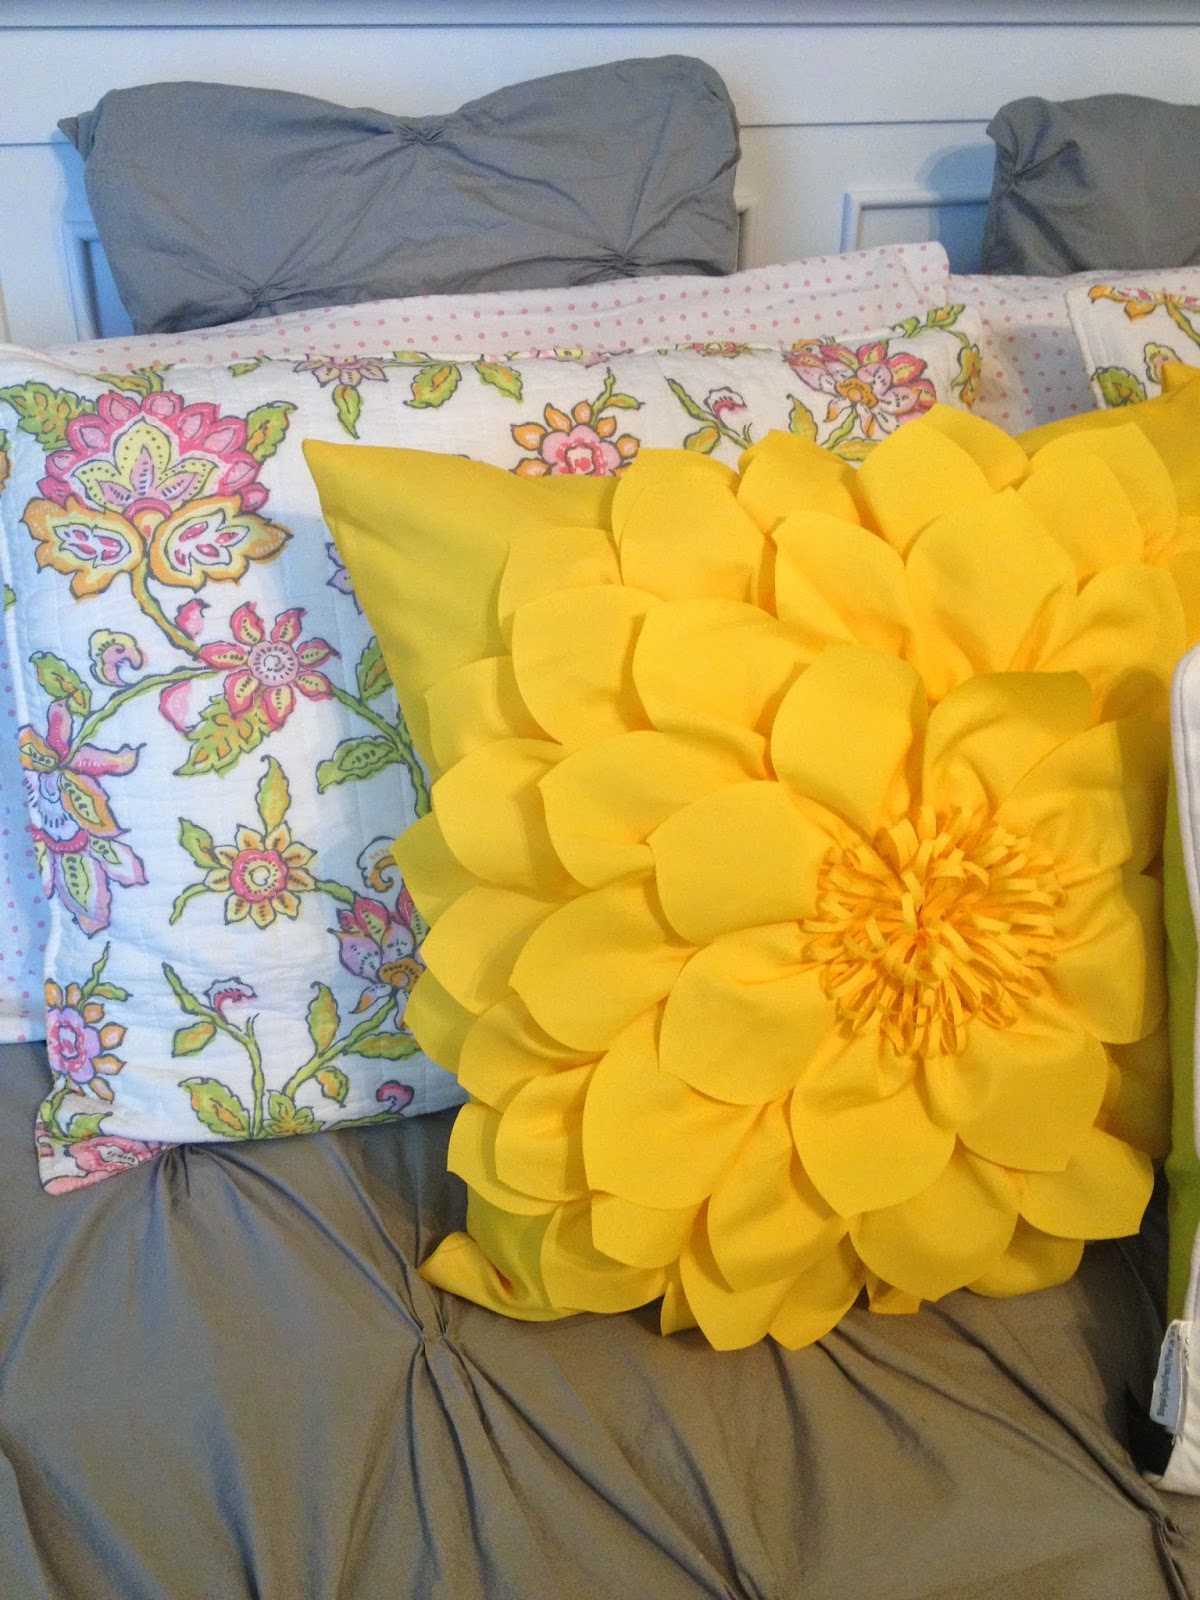 Marshalls Home Goods Decorative Pillows : West Creek Design: May 2014